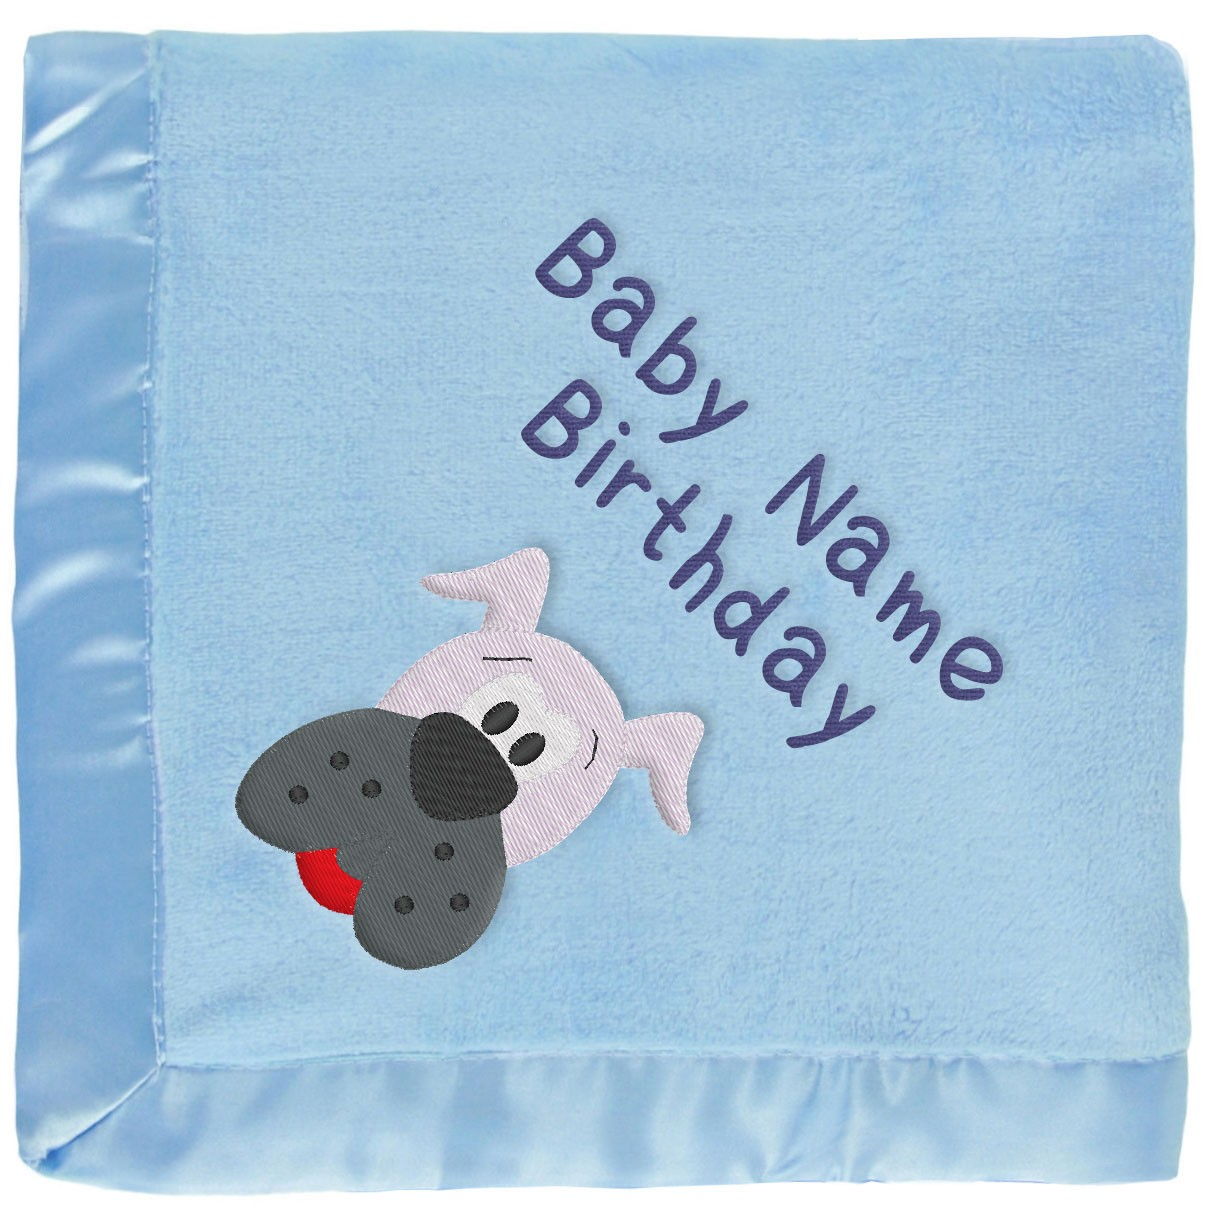 7533e18723c1 Blue Baby Blanket With Gray Dog   Embroidered Boy s Name